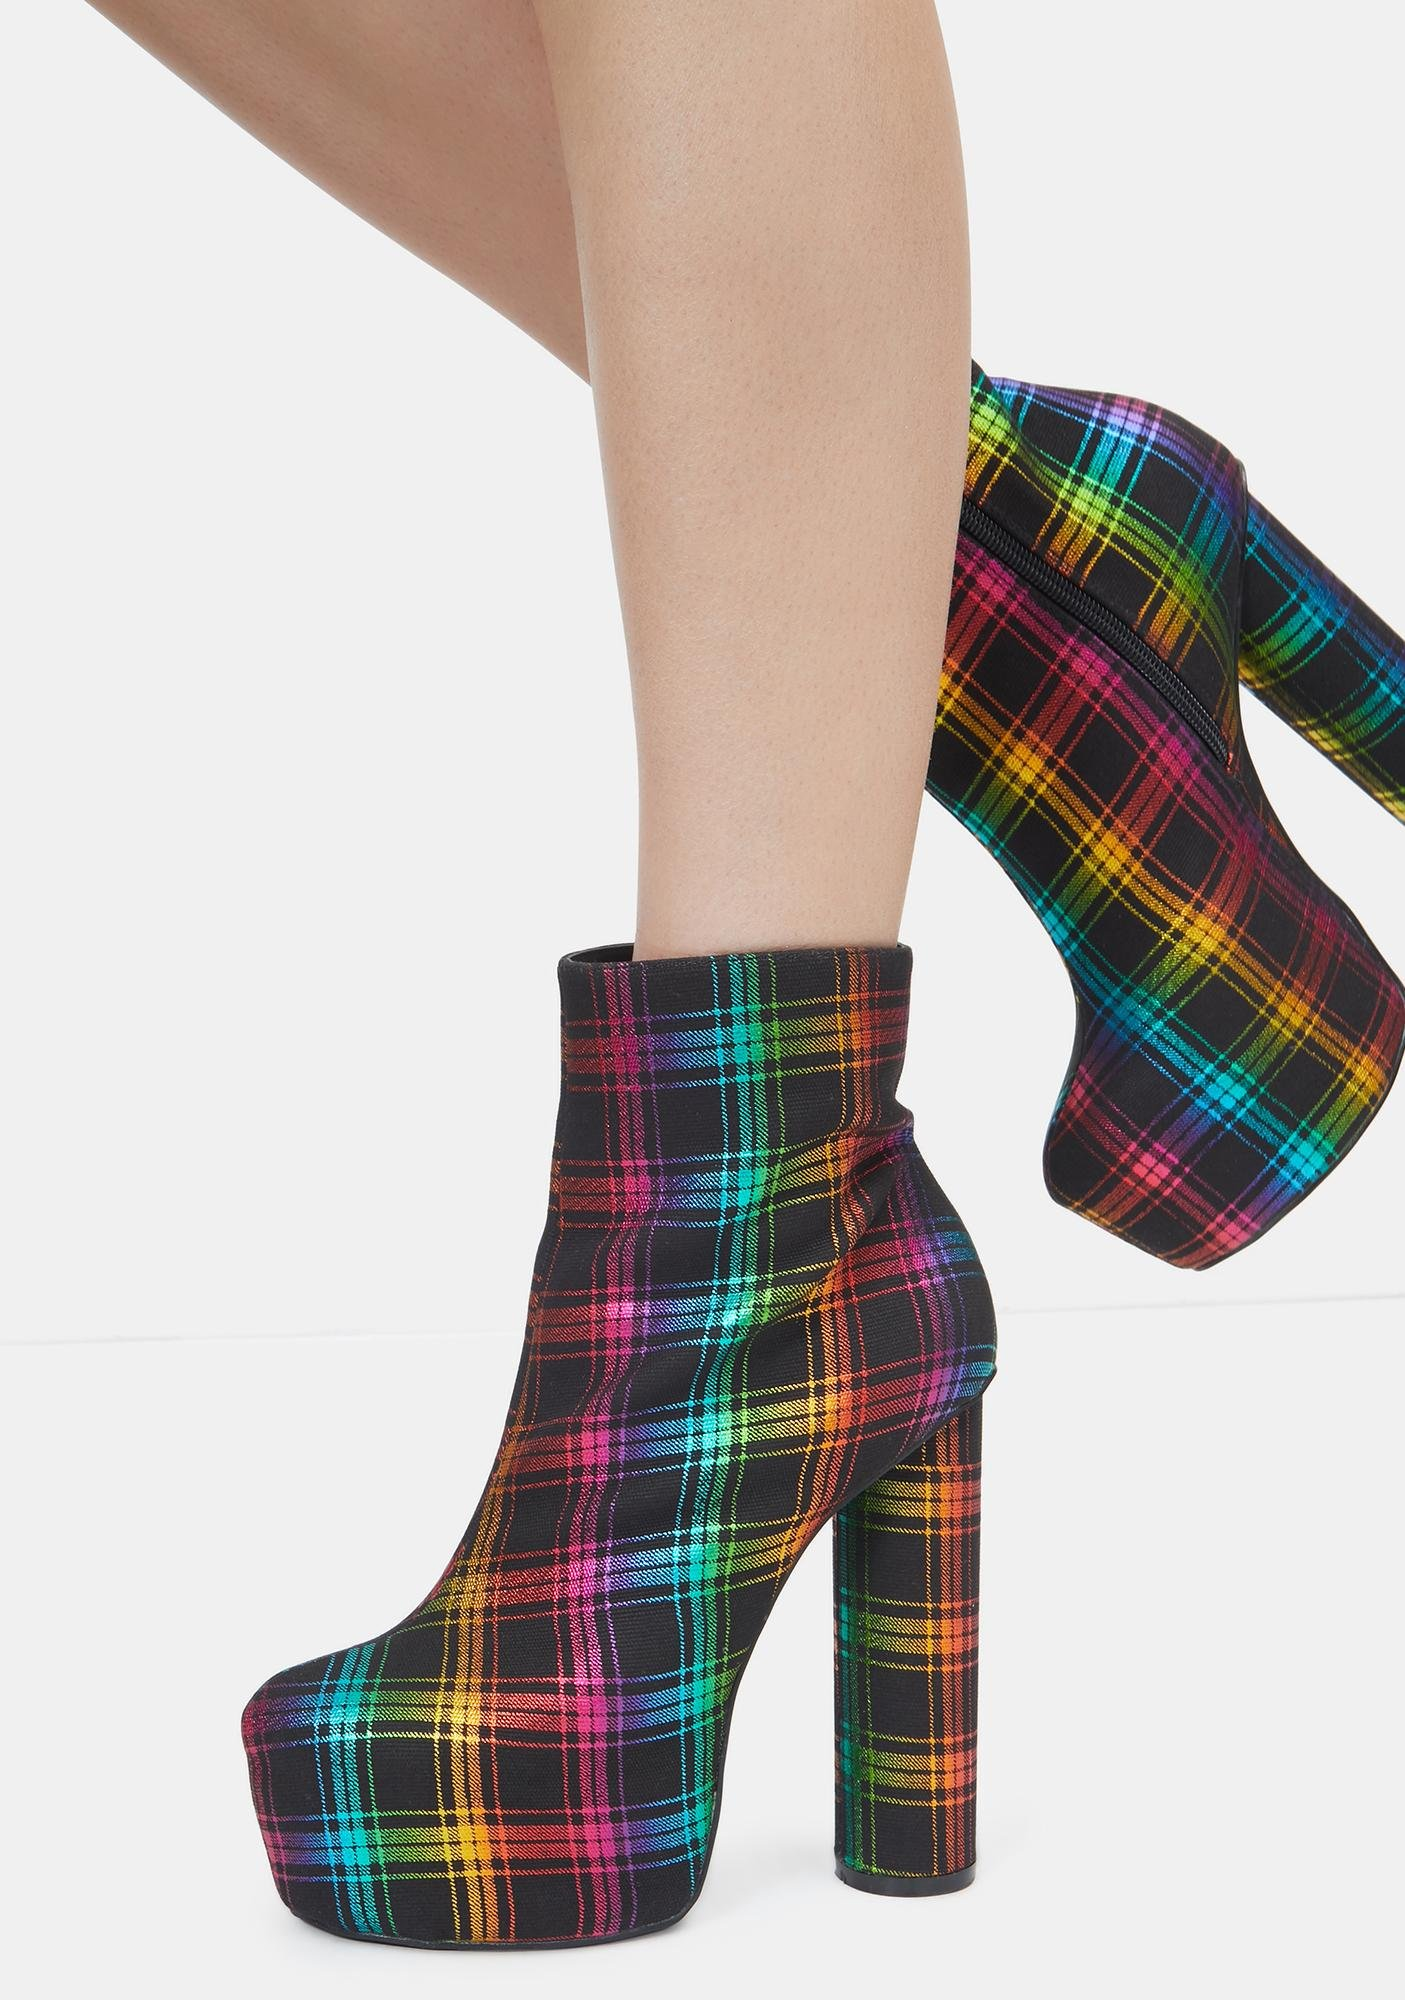 Lemon Drop by Privileged Rainbow Questar Ankle Boots